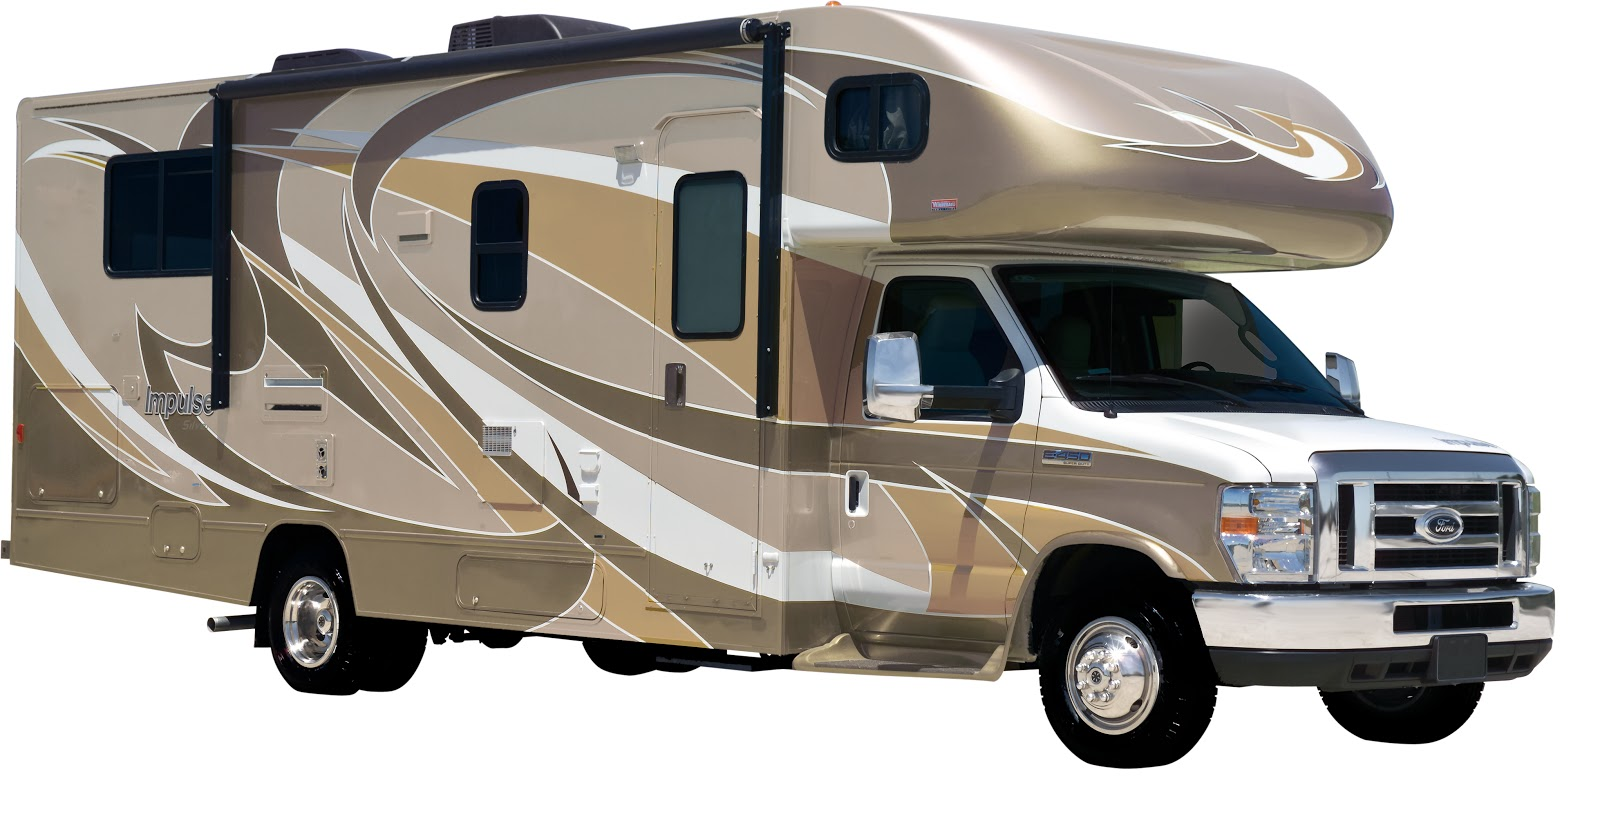 Model Class C RV Reviews 2015 Chateau Motorhomes From Thor